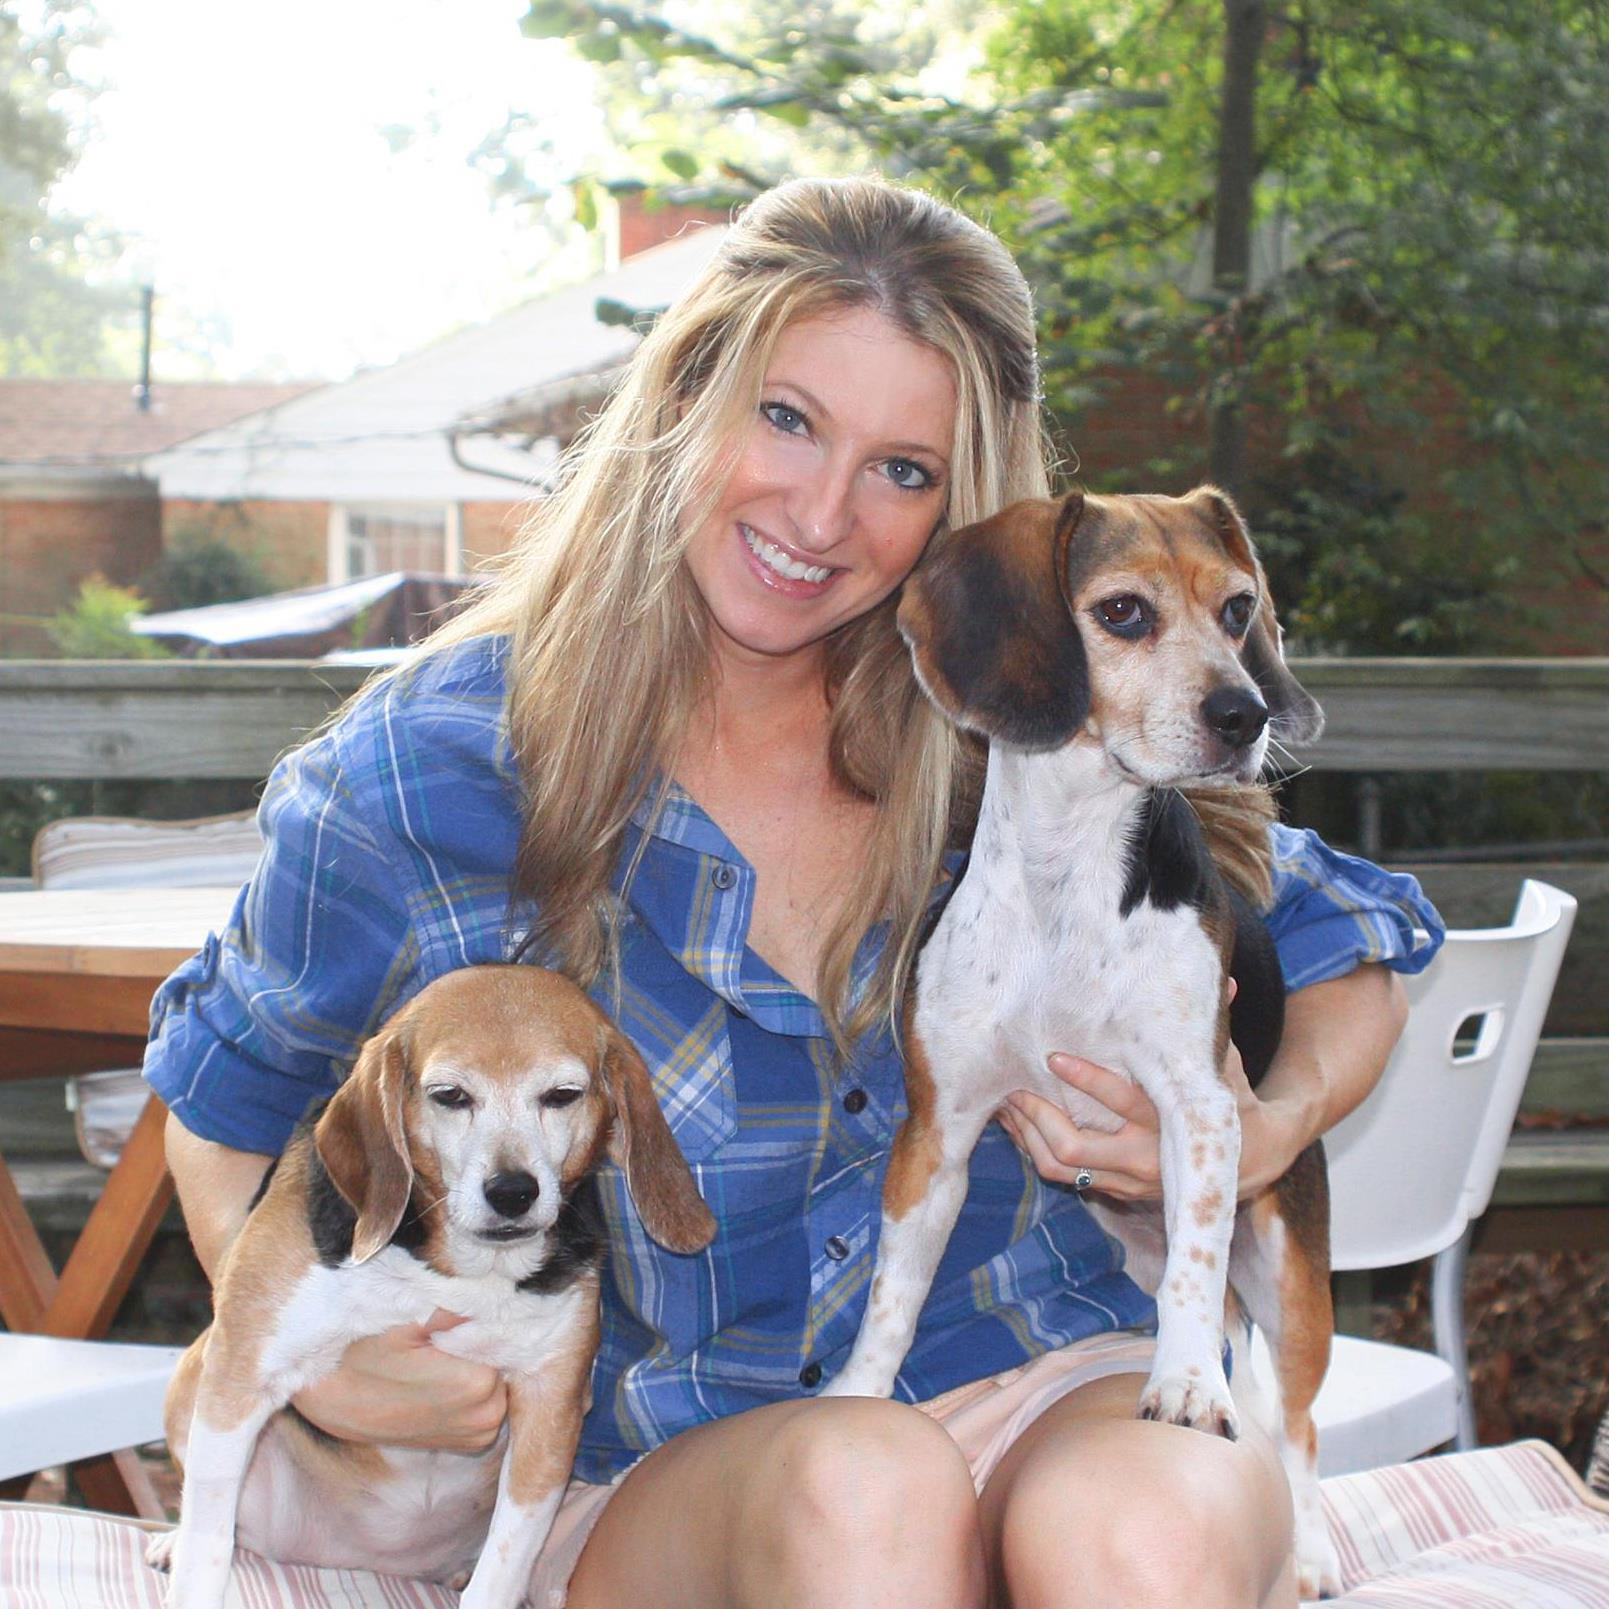 Me with Meadow and Lucy, my two sweet beagle girls who have since crossed over the Rainbow Bridge